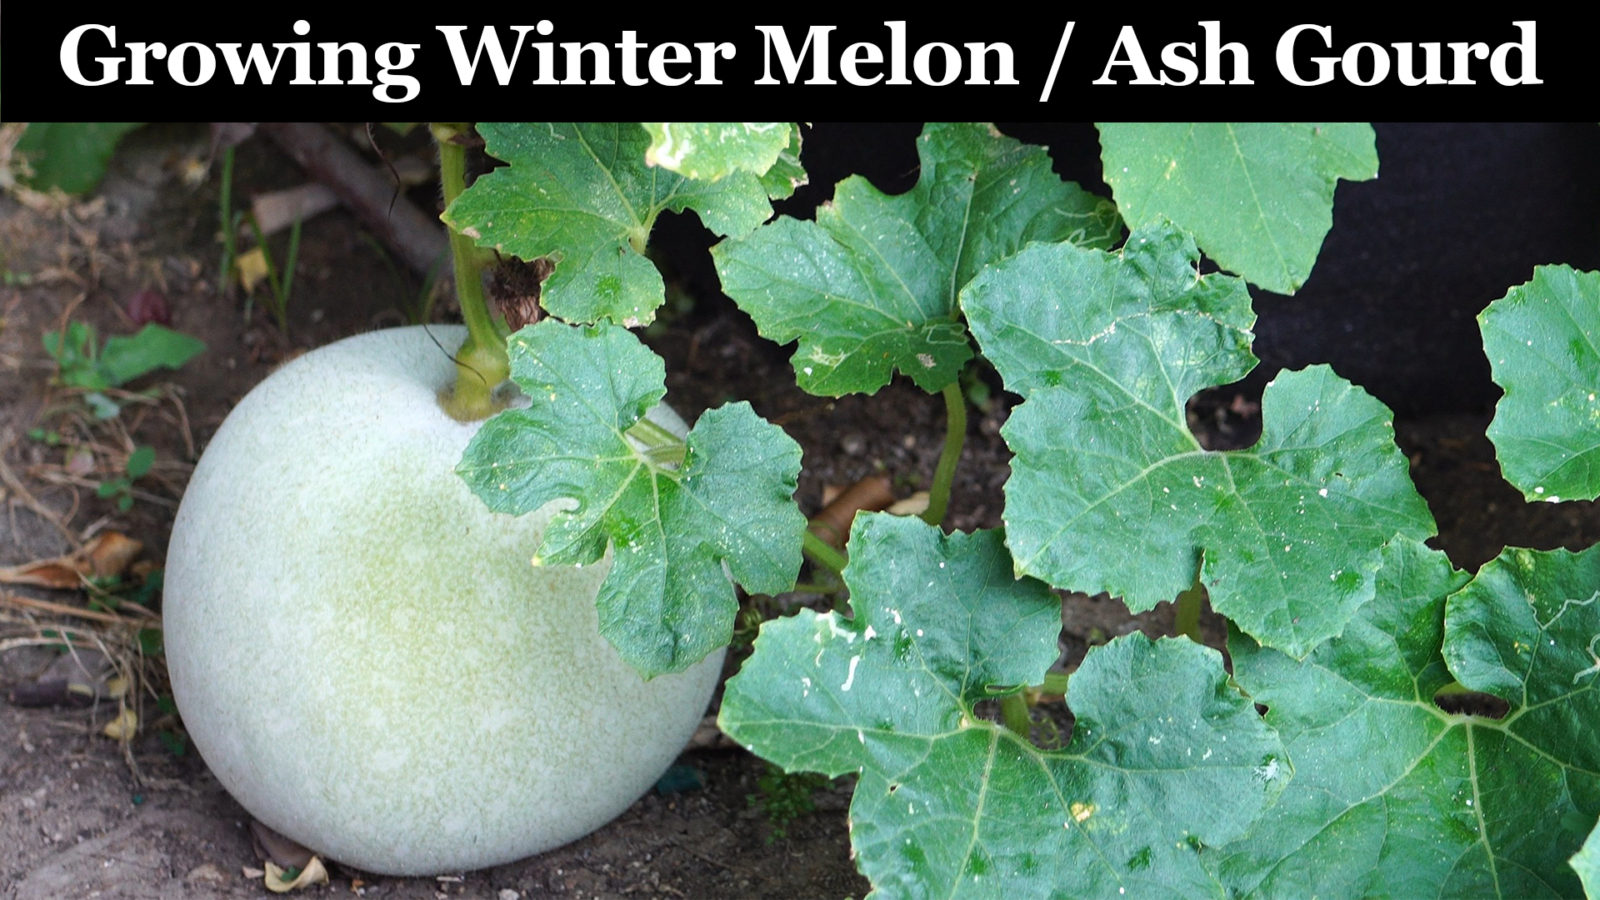 Ash Gourd Growing guide